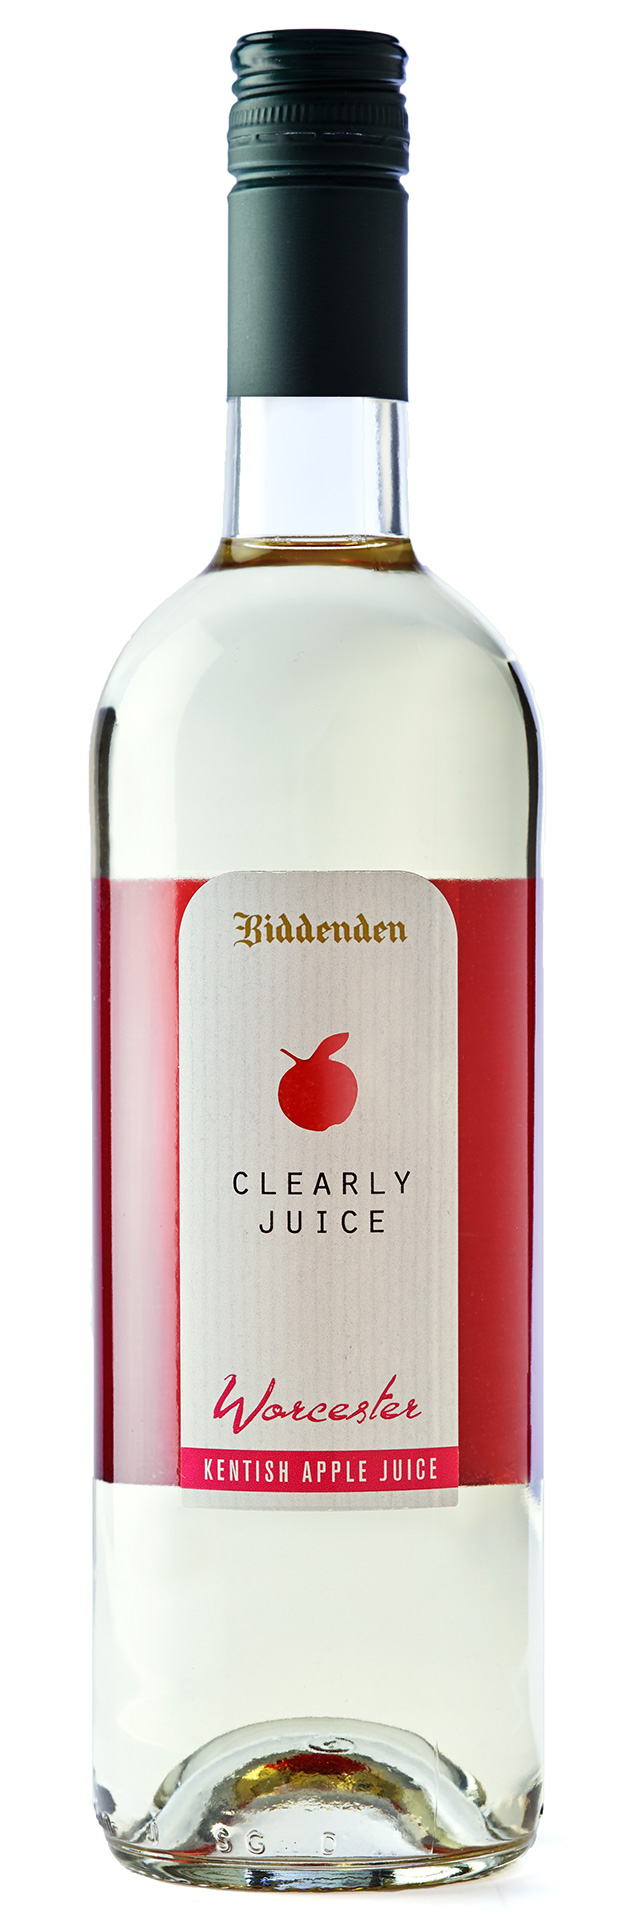 worcester-clearly-juice